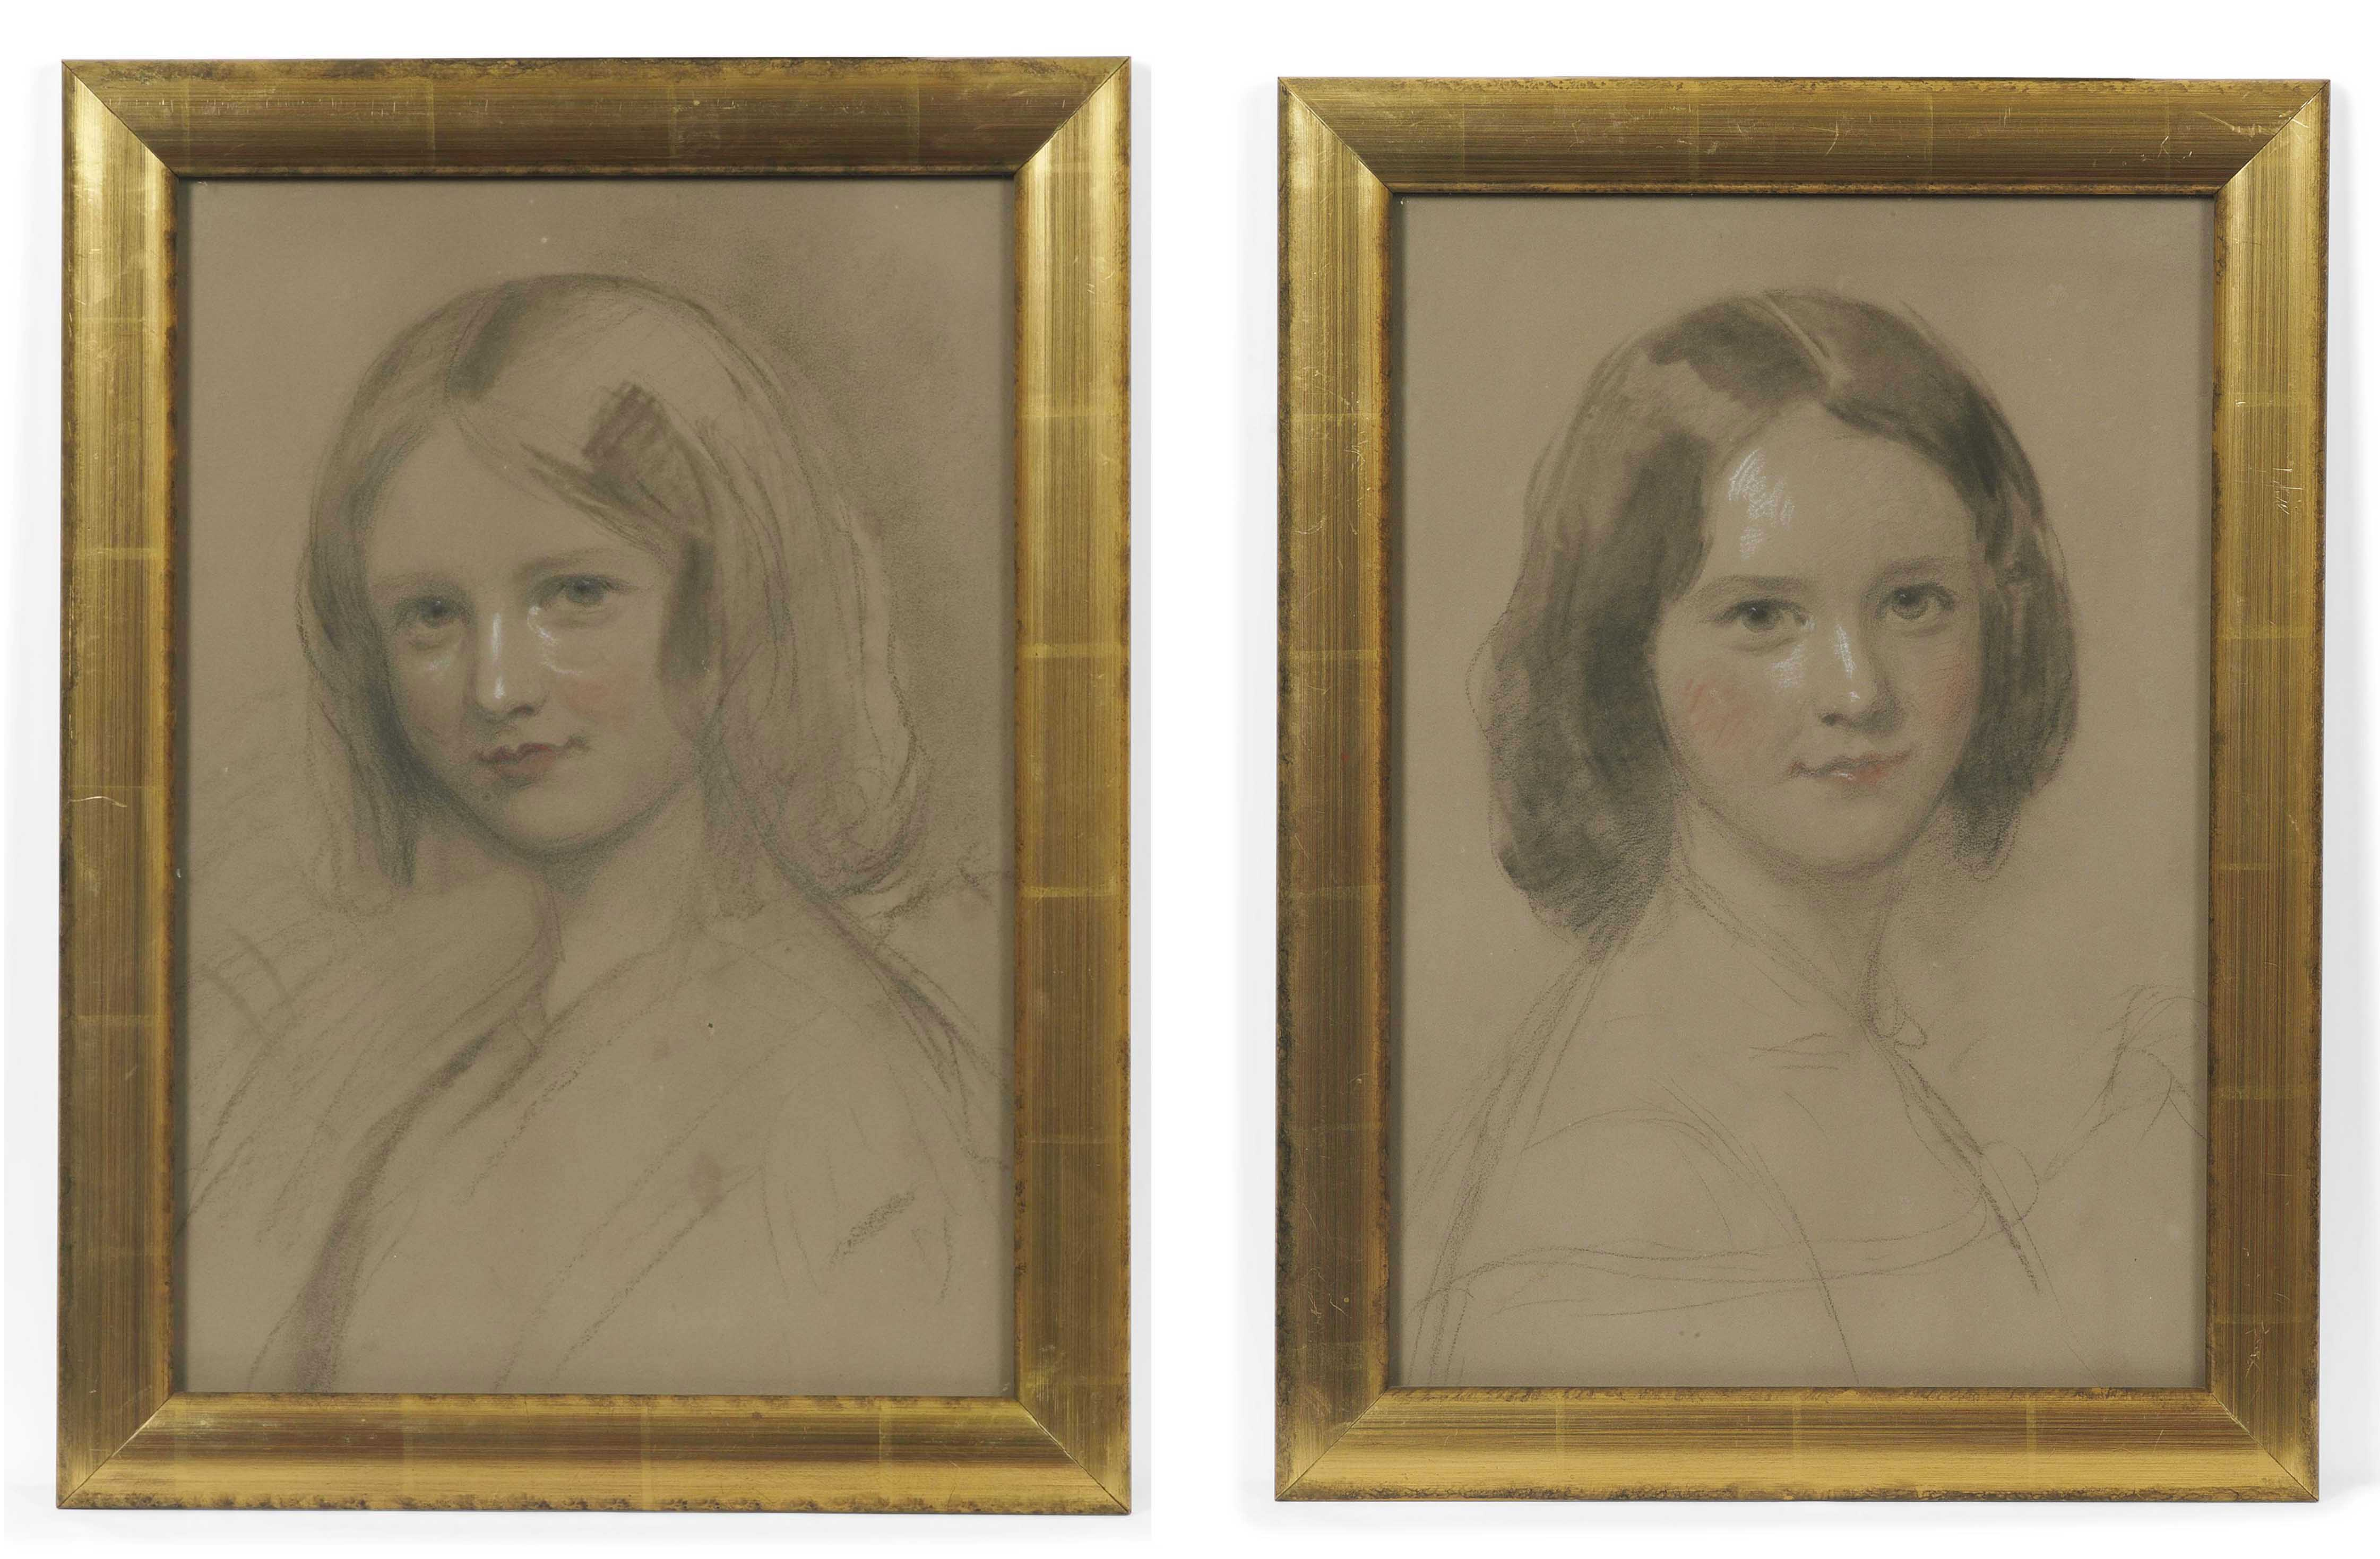 The Bagnell sisters; Portrait studies of Lorna and Emma Bagnell, bust-length